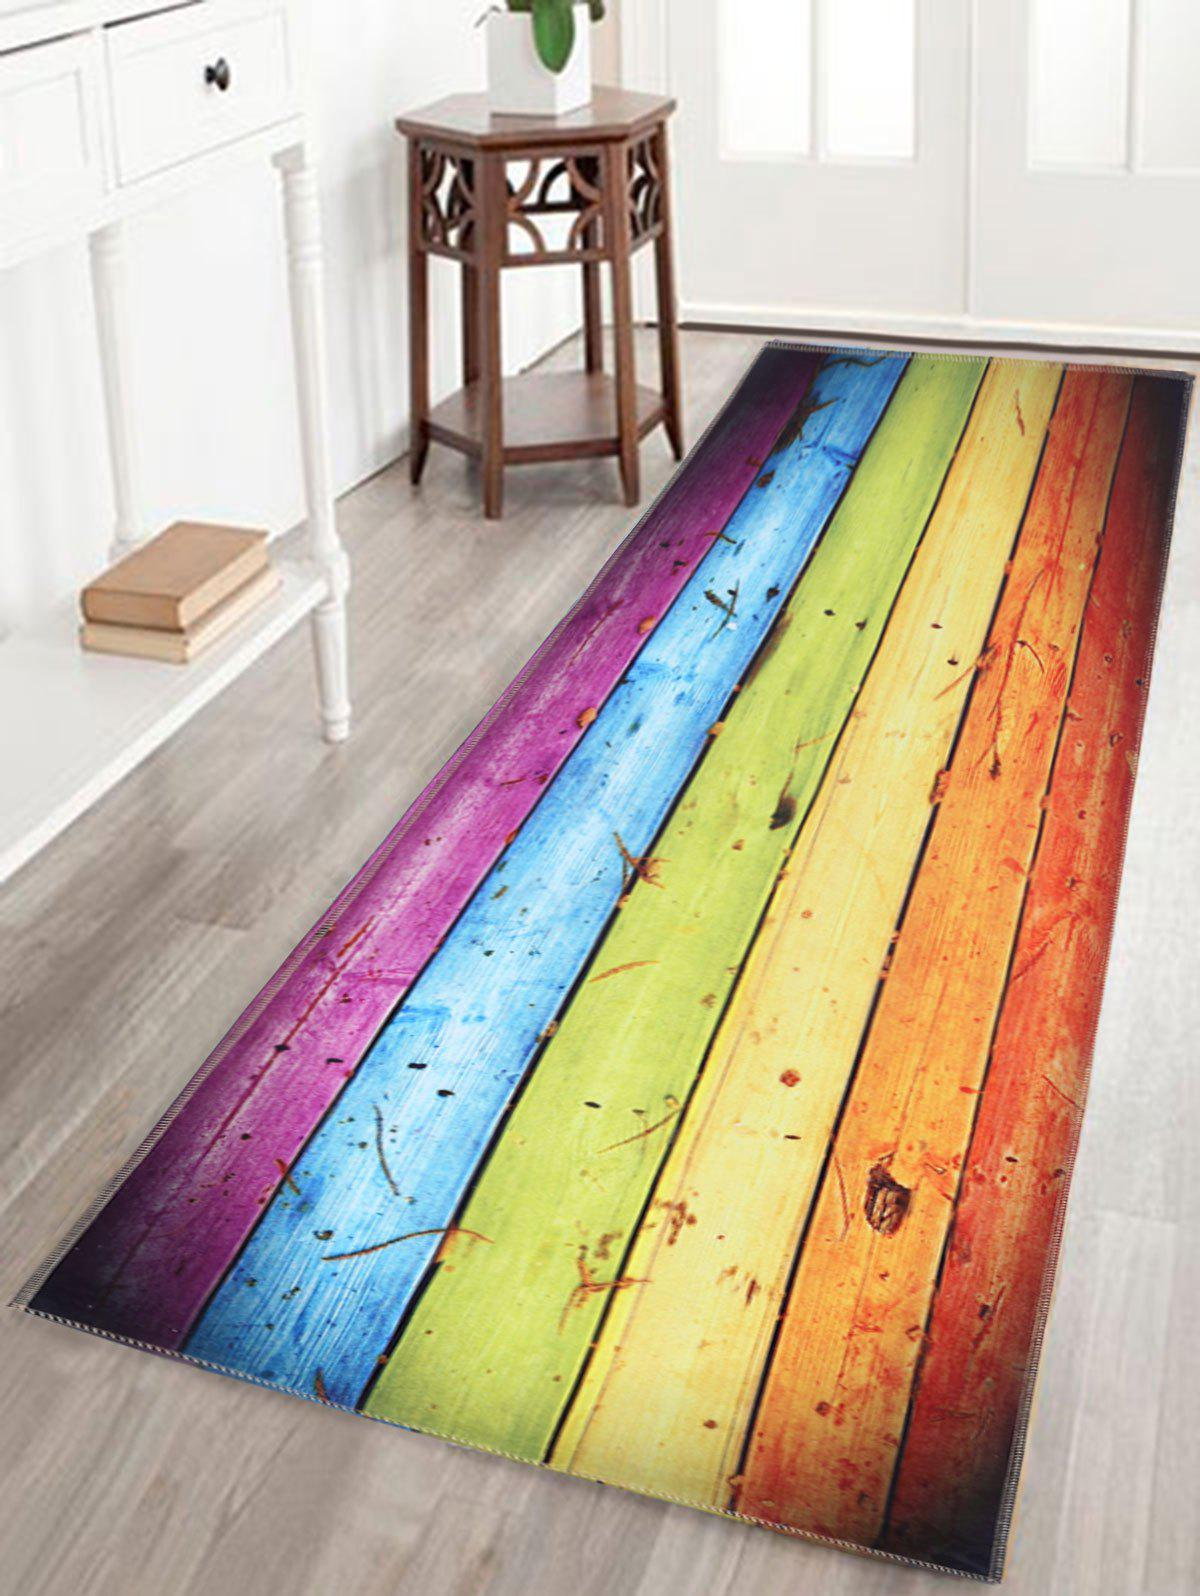 Wood Grain Rainbow Print Skidproof Bathroom Rug skidproof water absorption bathroom rug with wood grain print